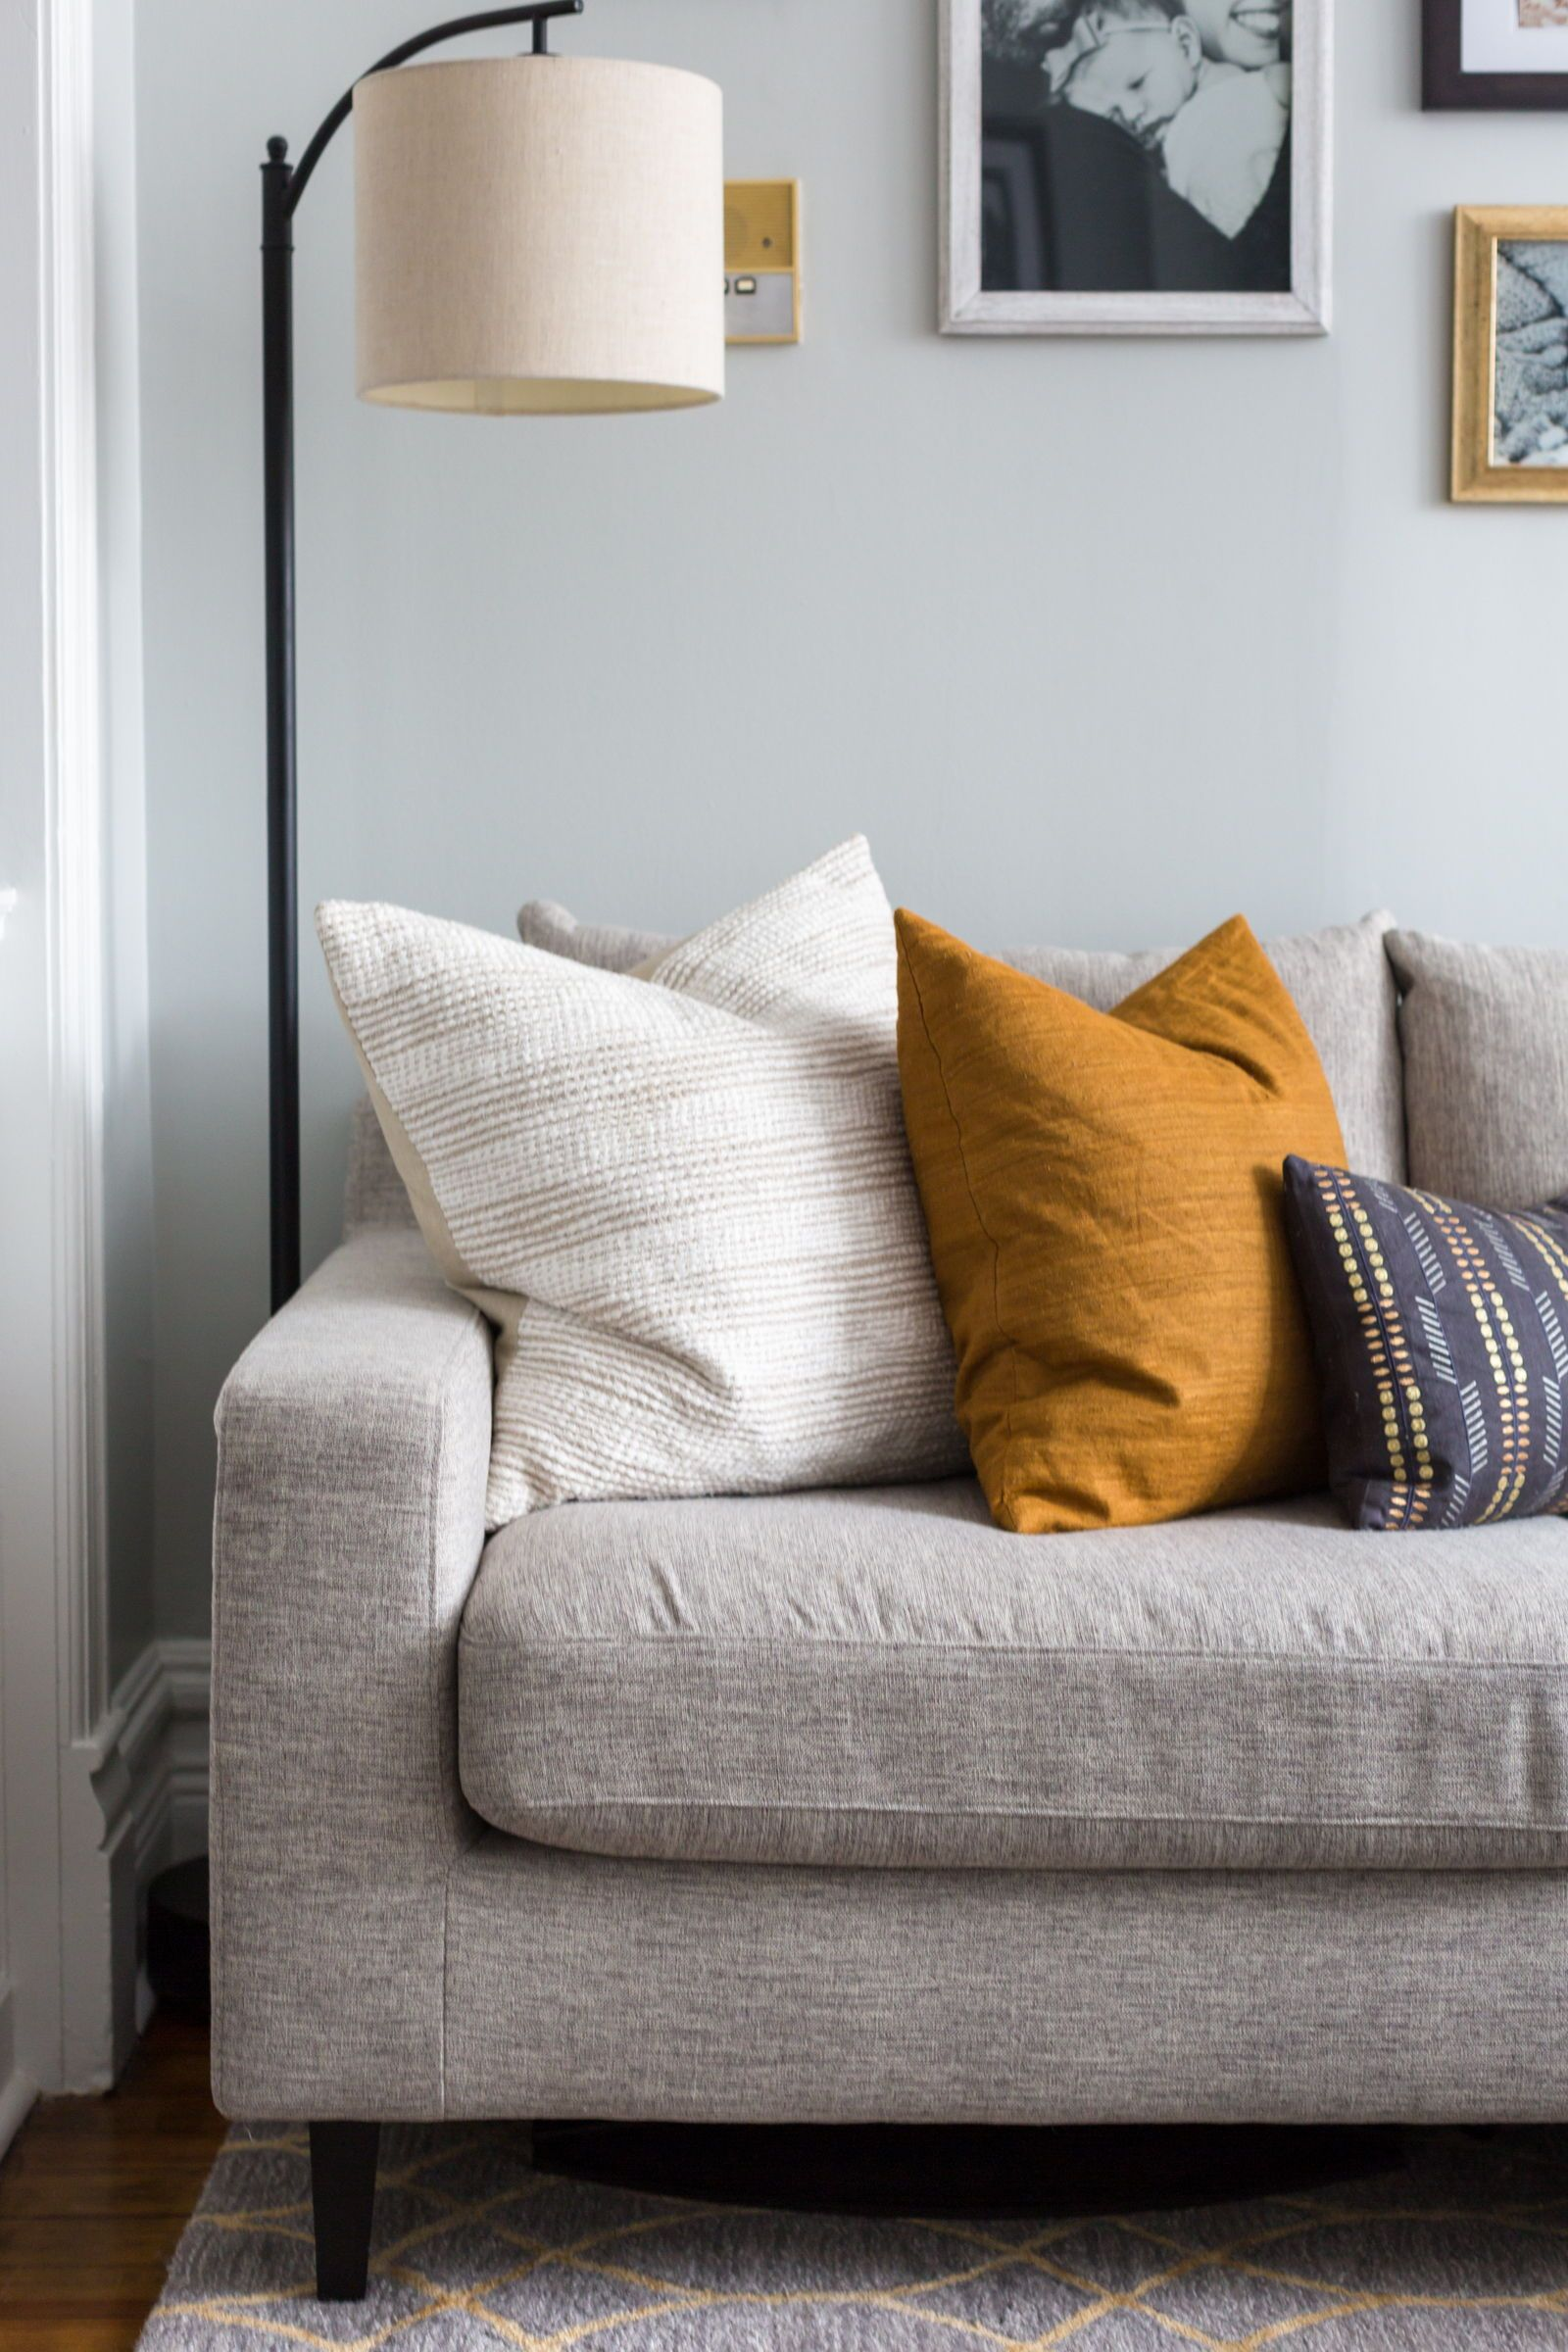 Spotted in this home by stringfellow interiors interior defines sloan sofa in cross weave seed